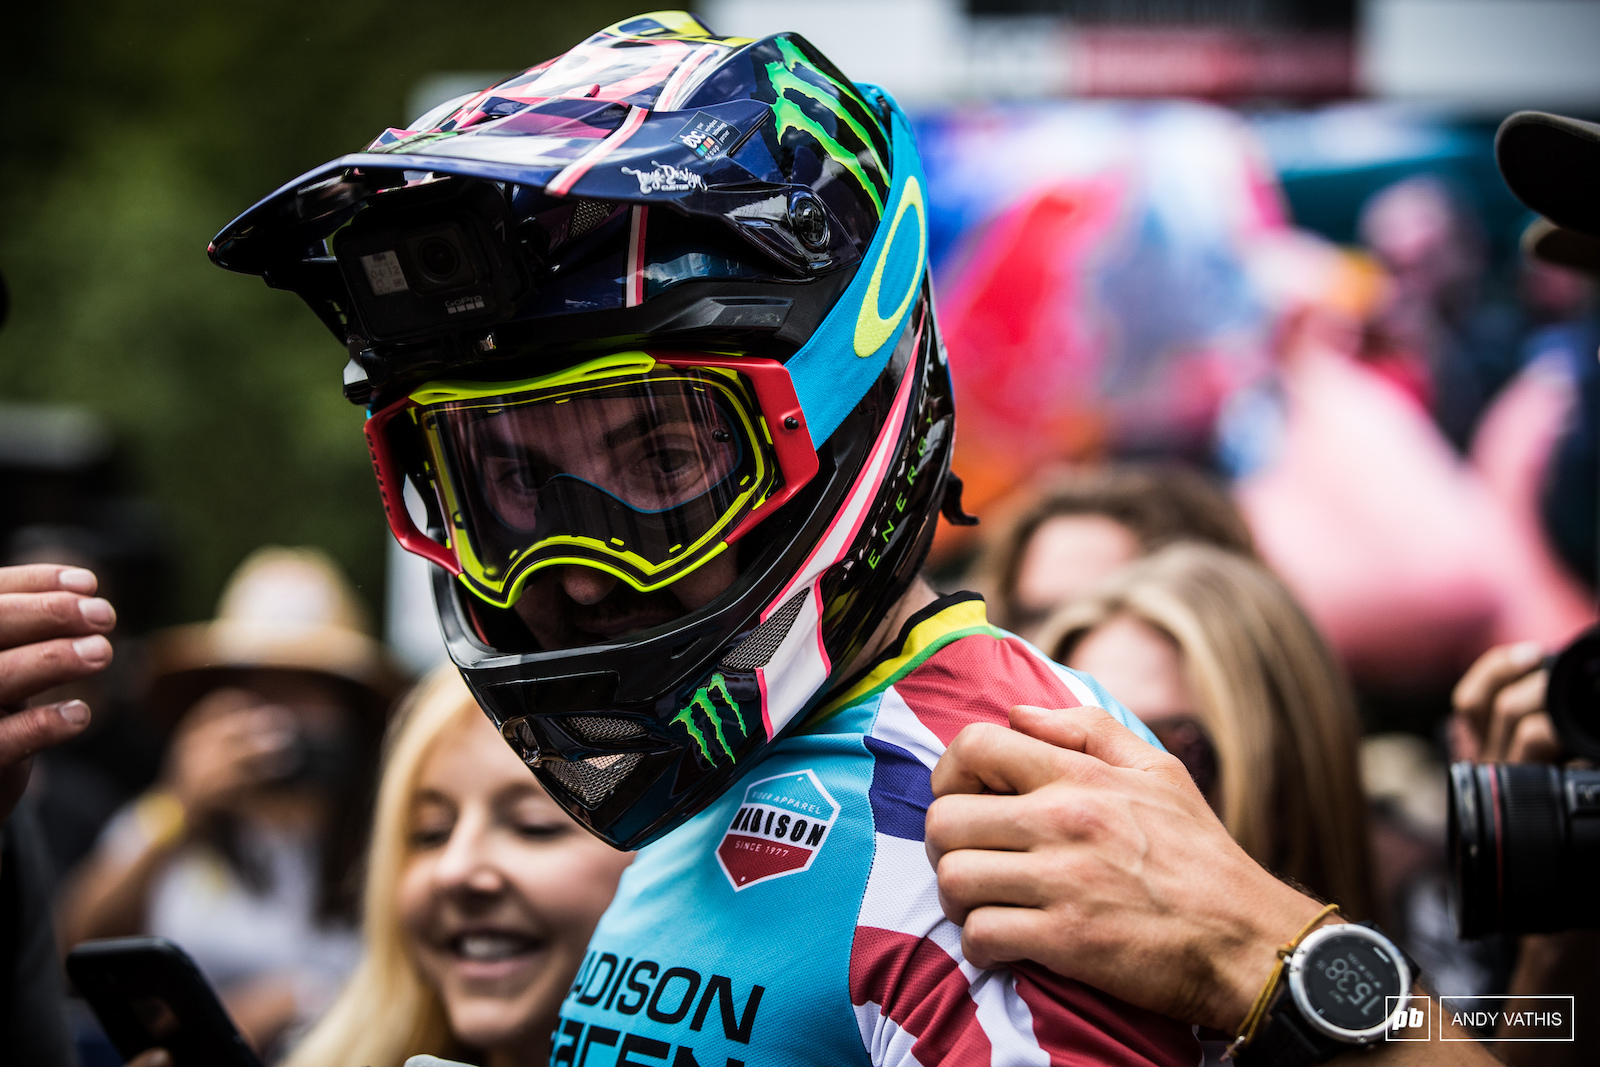 The man of the hour Danny Hart was the deciding factor in the Amaury vs Bruni overall duel. Him taking the win sealed it for Bruni but also made him one of two Brits this season to take a win away from the French.